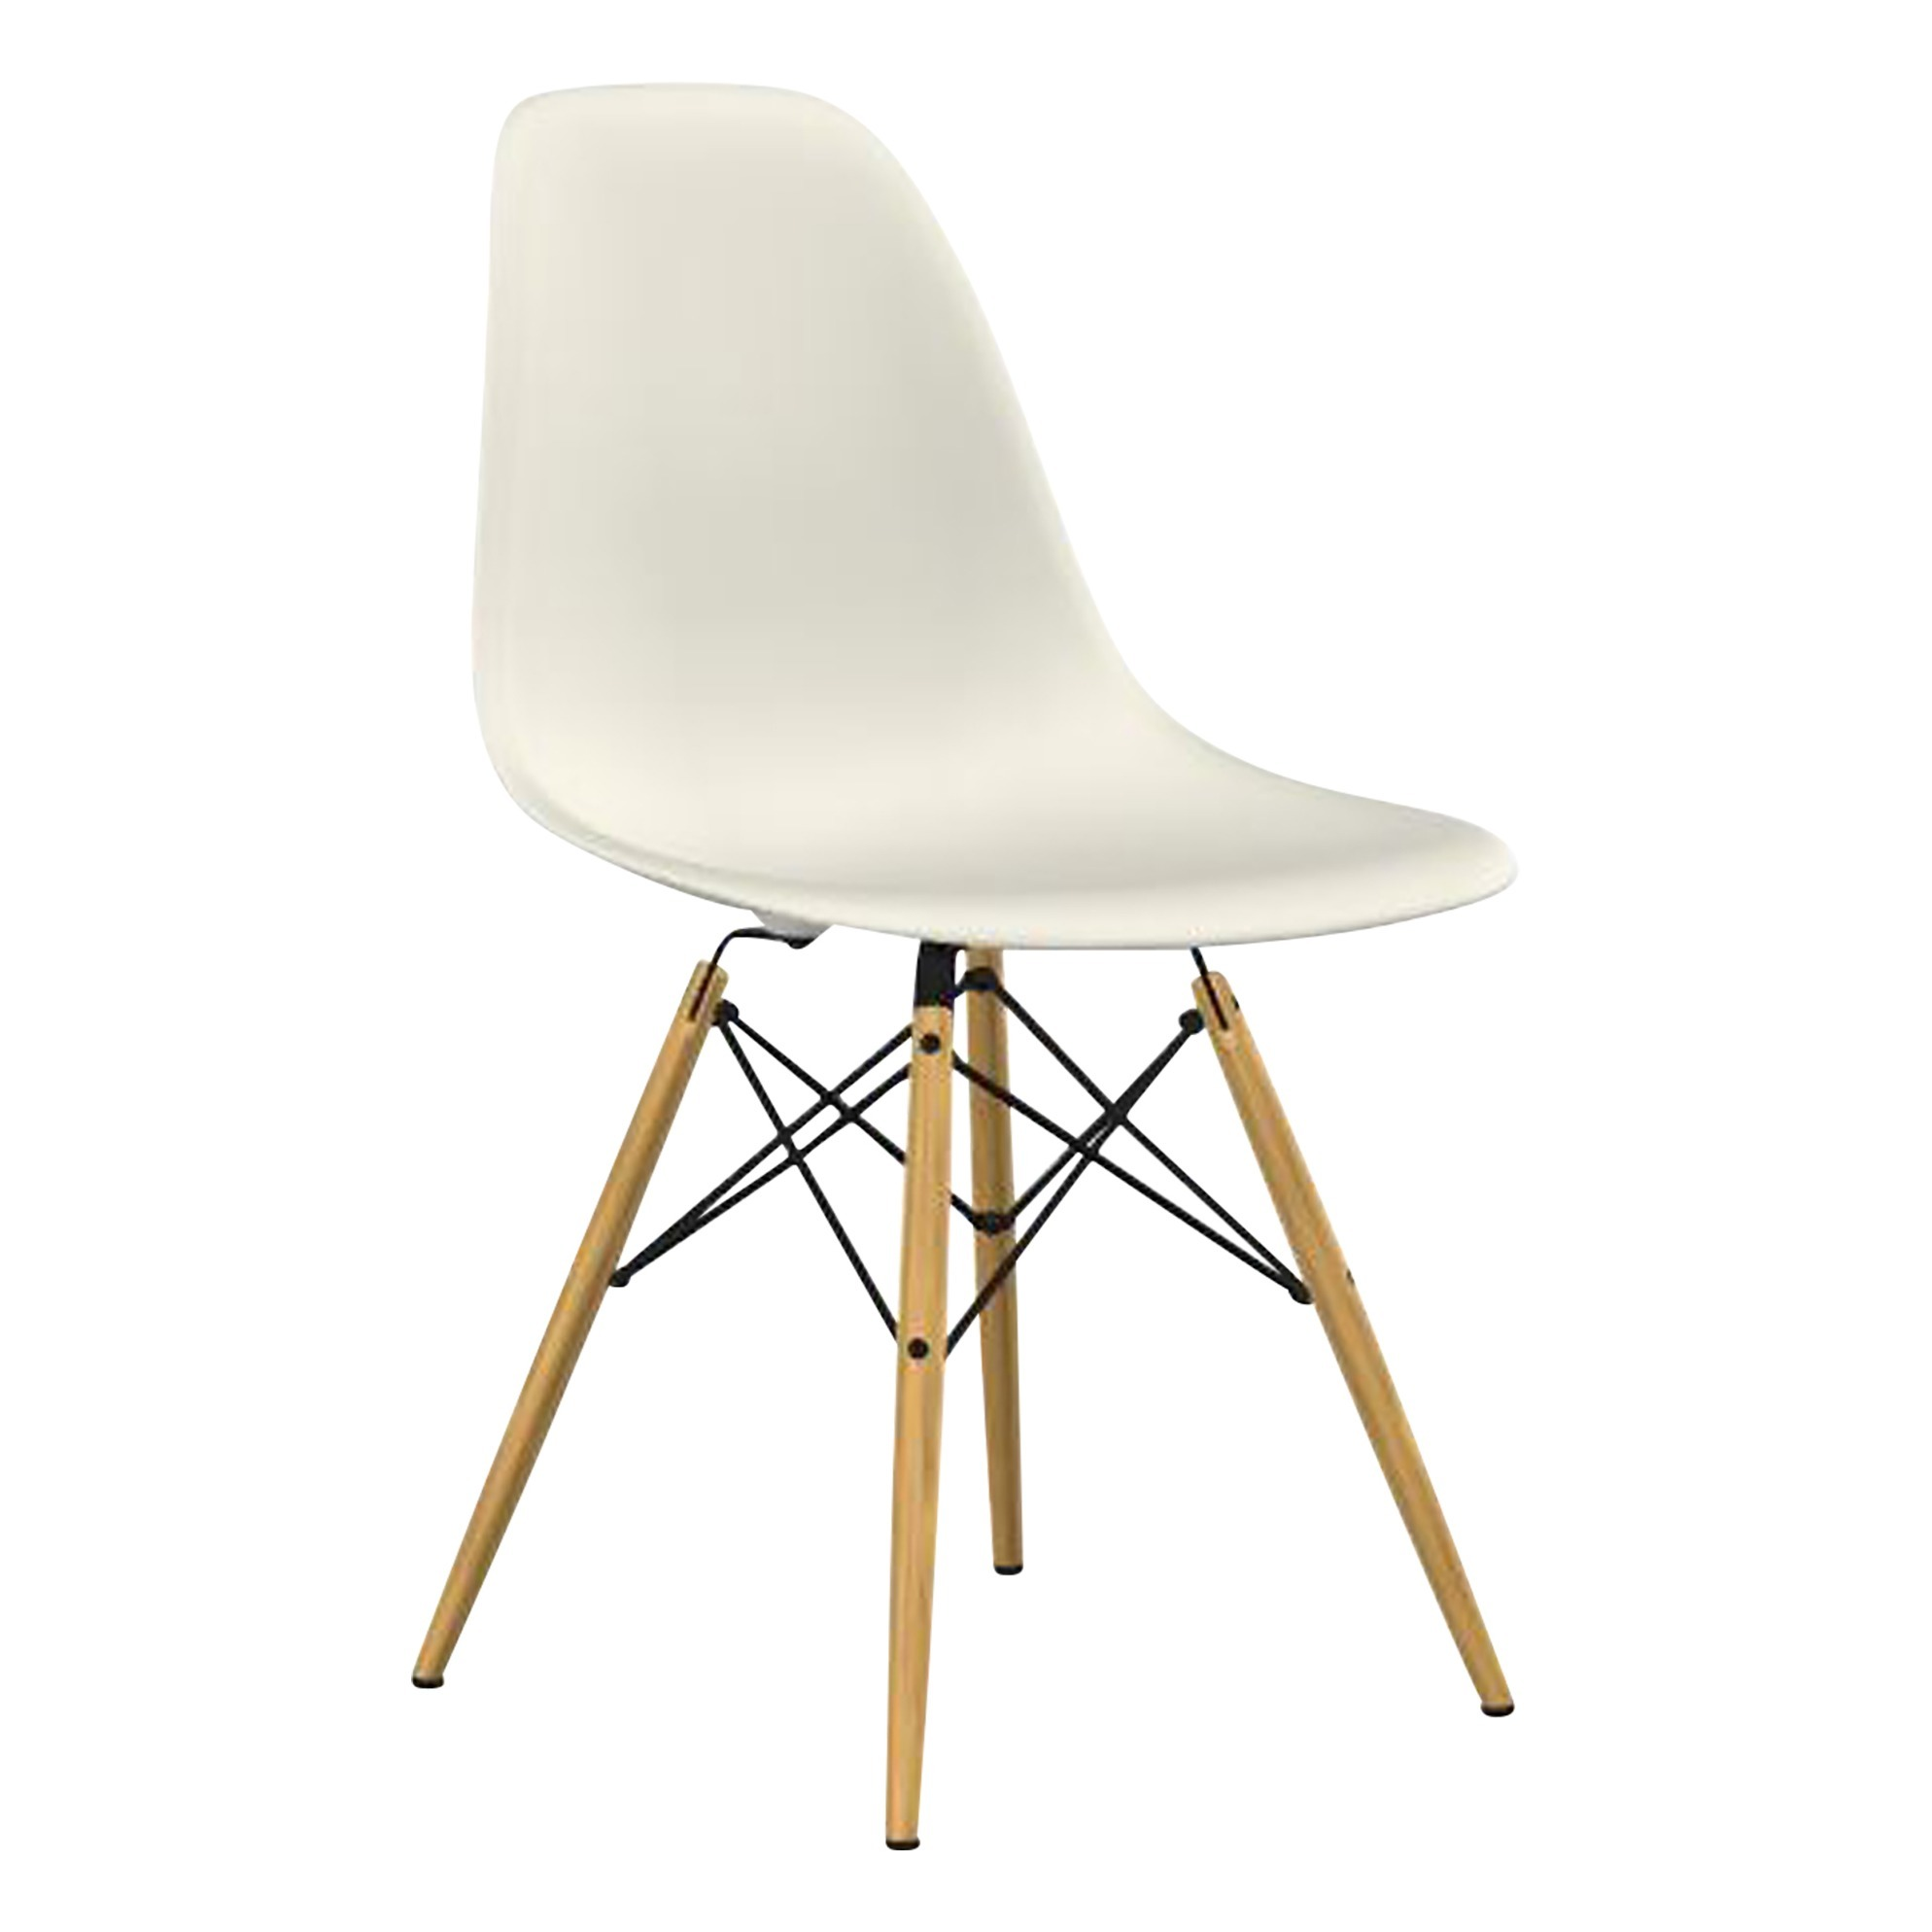 Chaise Dsw Rembourree Chaise Dsw Charles Ray Eames 1950 Crème Vitra Design Adulte